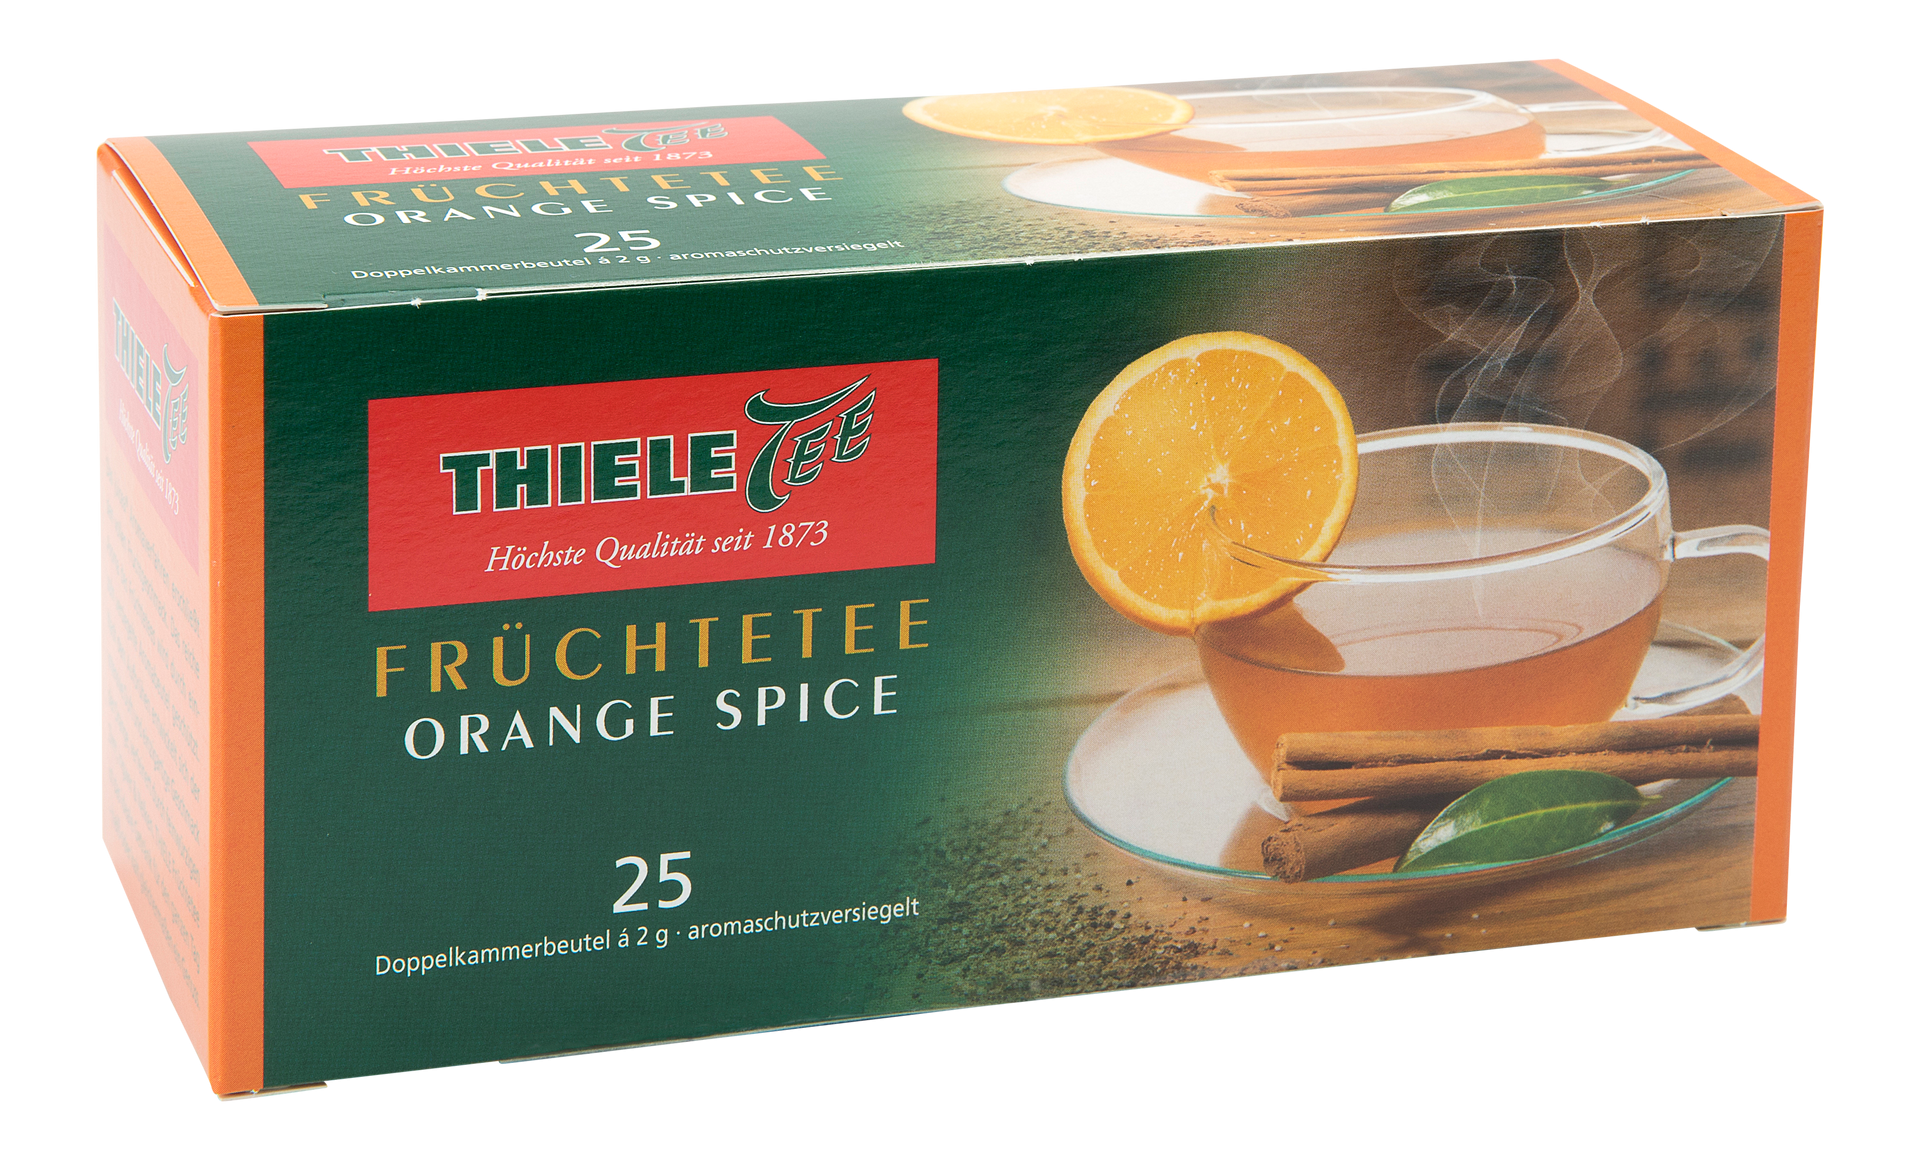 Juicea Orange Spice 25 x 2g